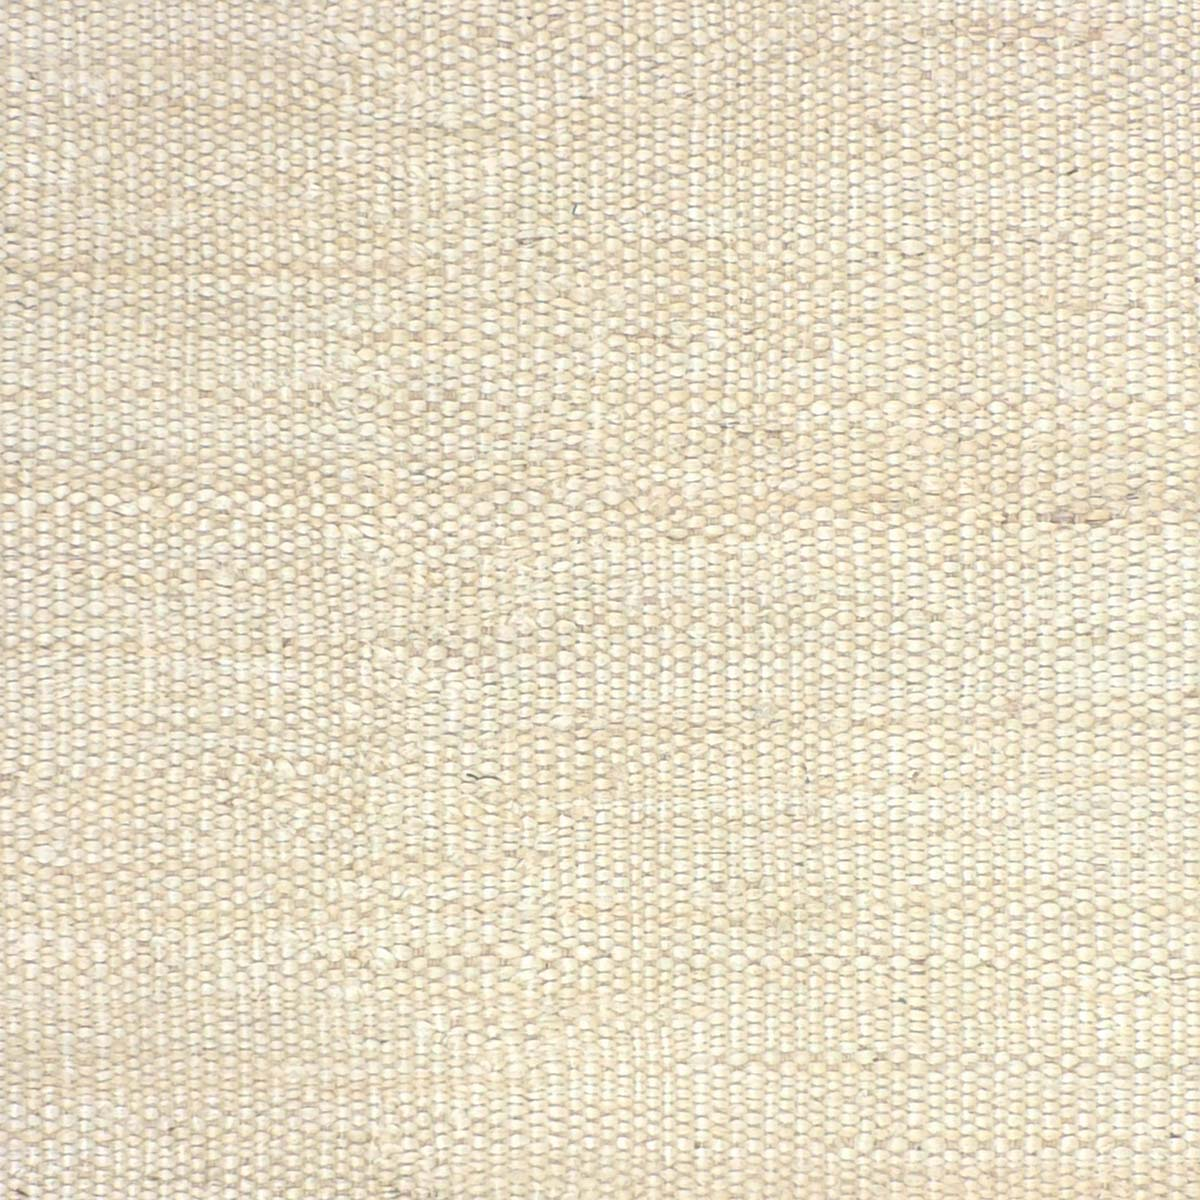 Jute Natural White Colorscope Rug Concepts